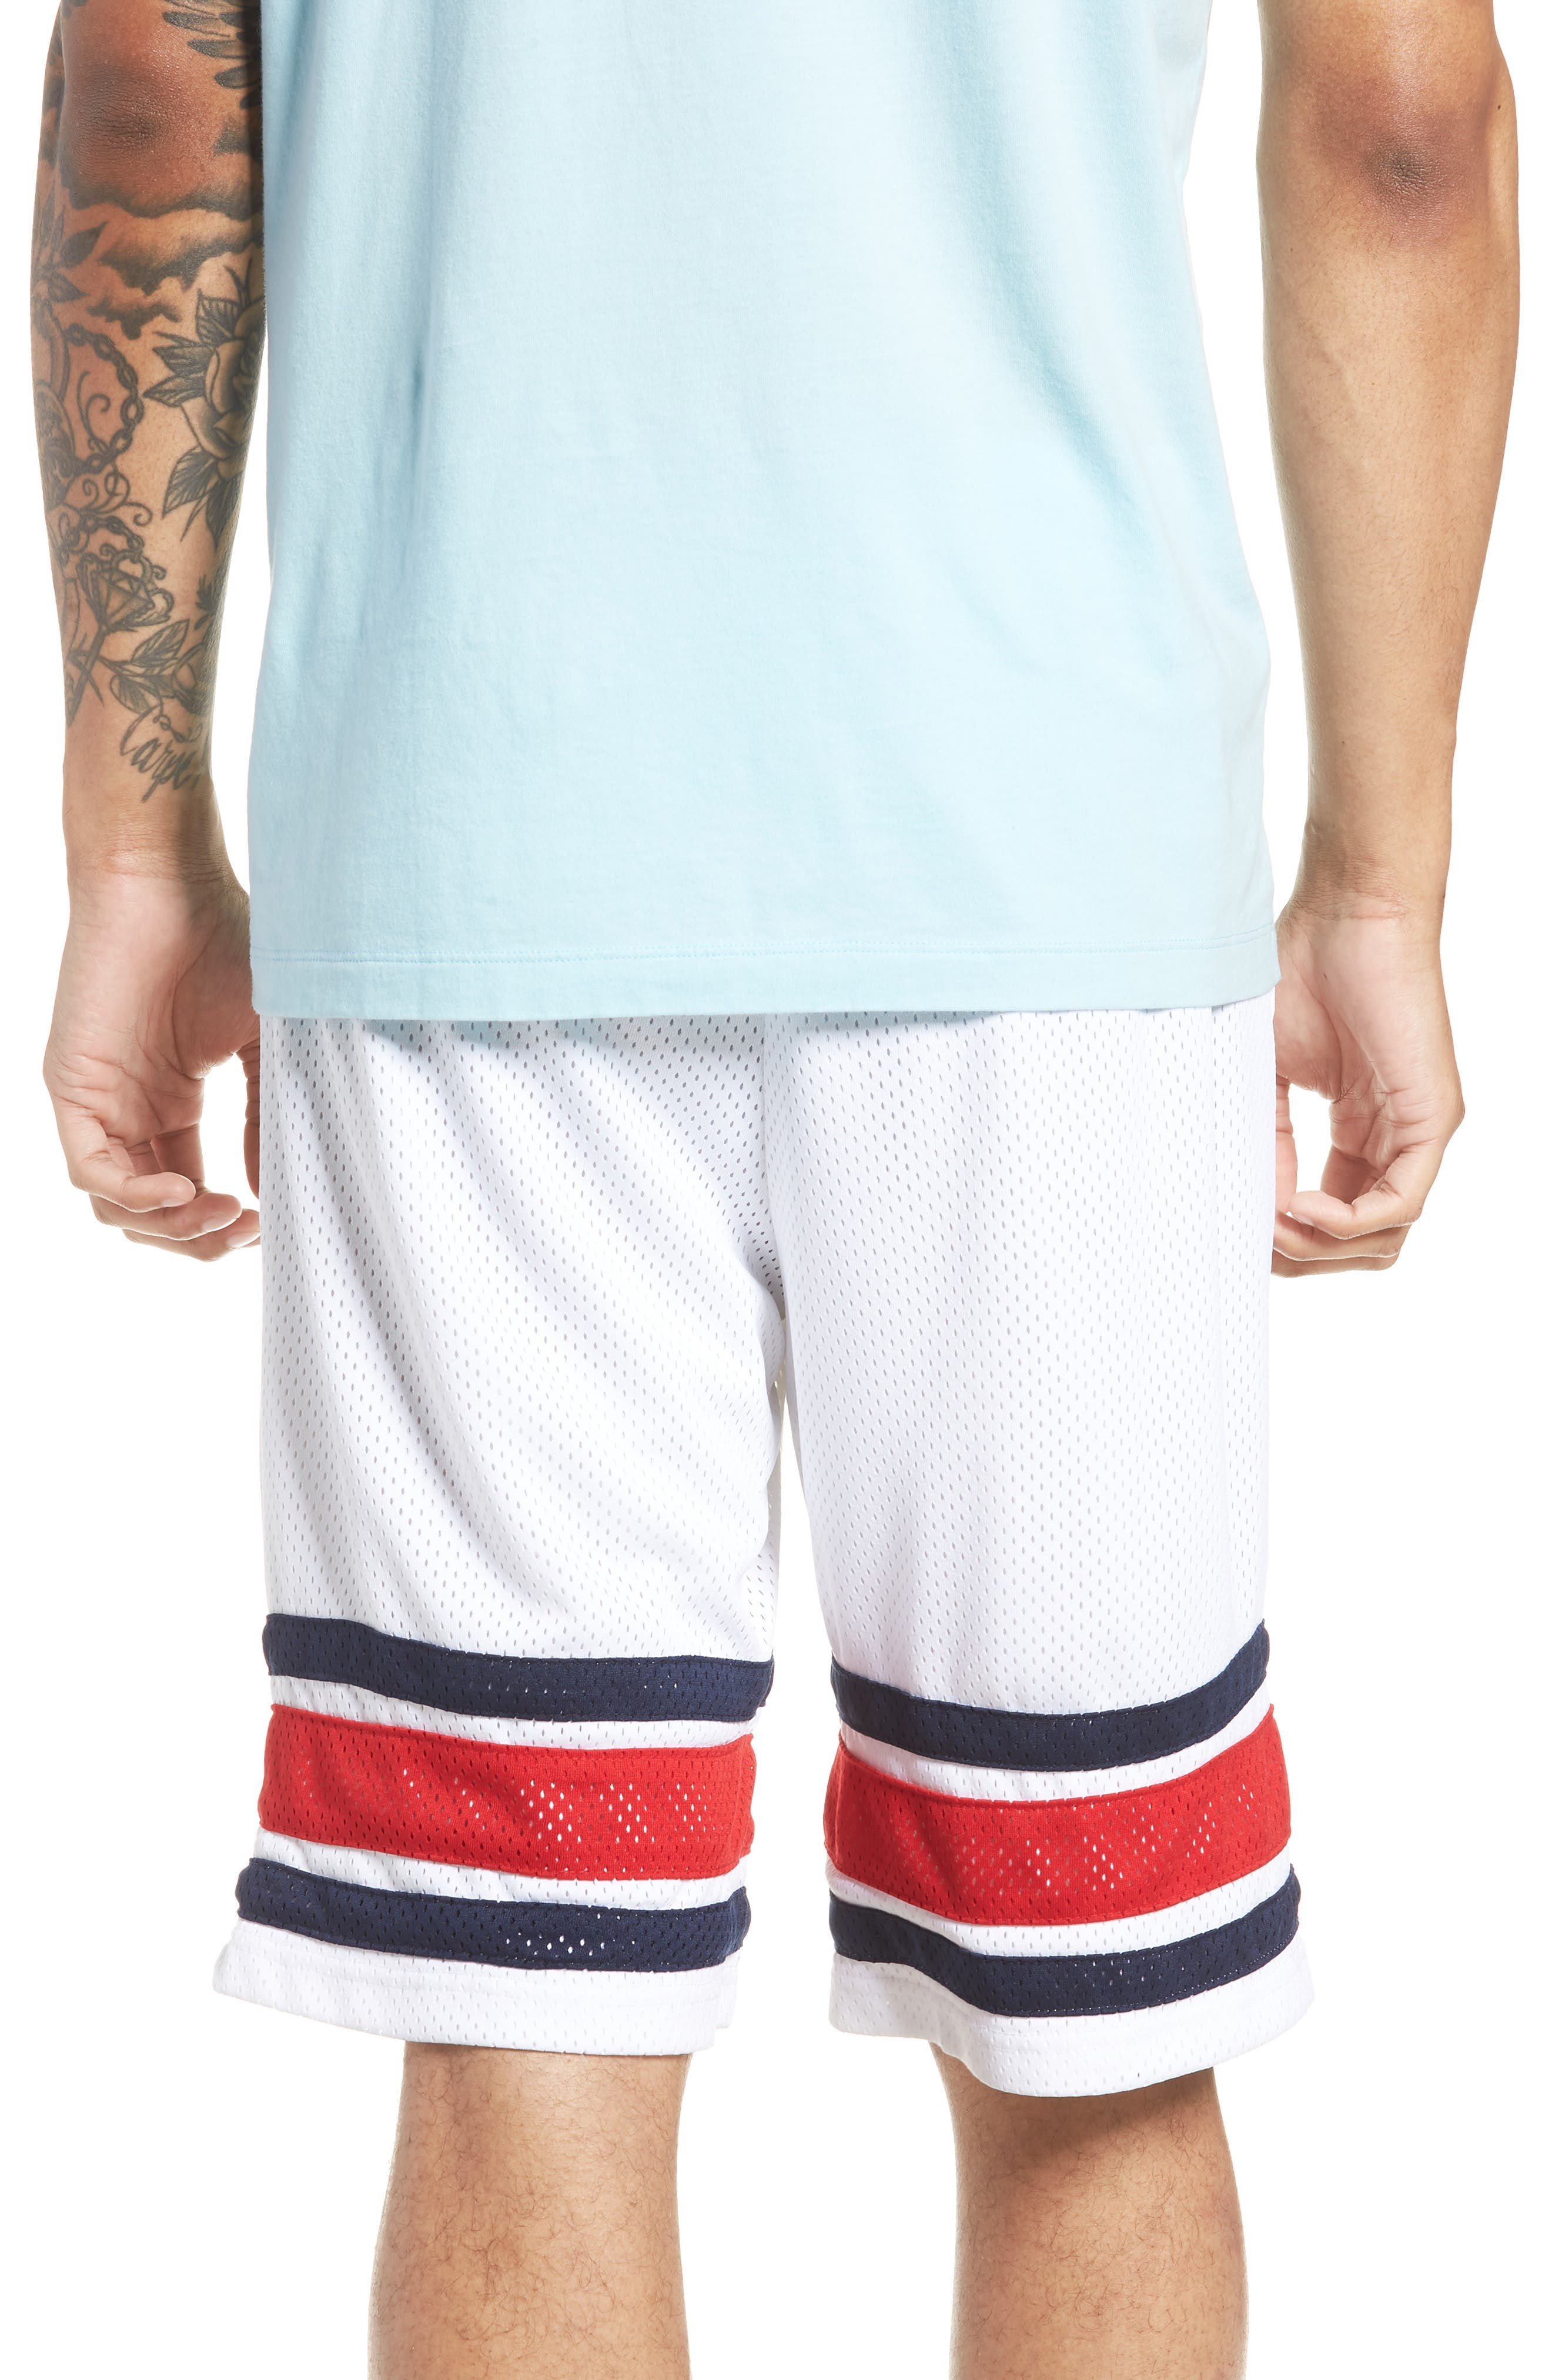 Parker Basketball Shorts,                             Alternate thumbnail 2, color,                             White/ Peacoat/ Chinese Red